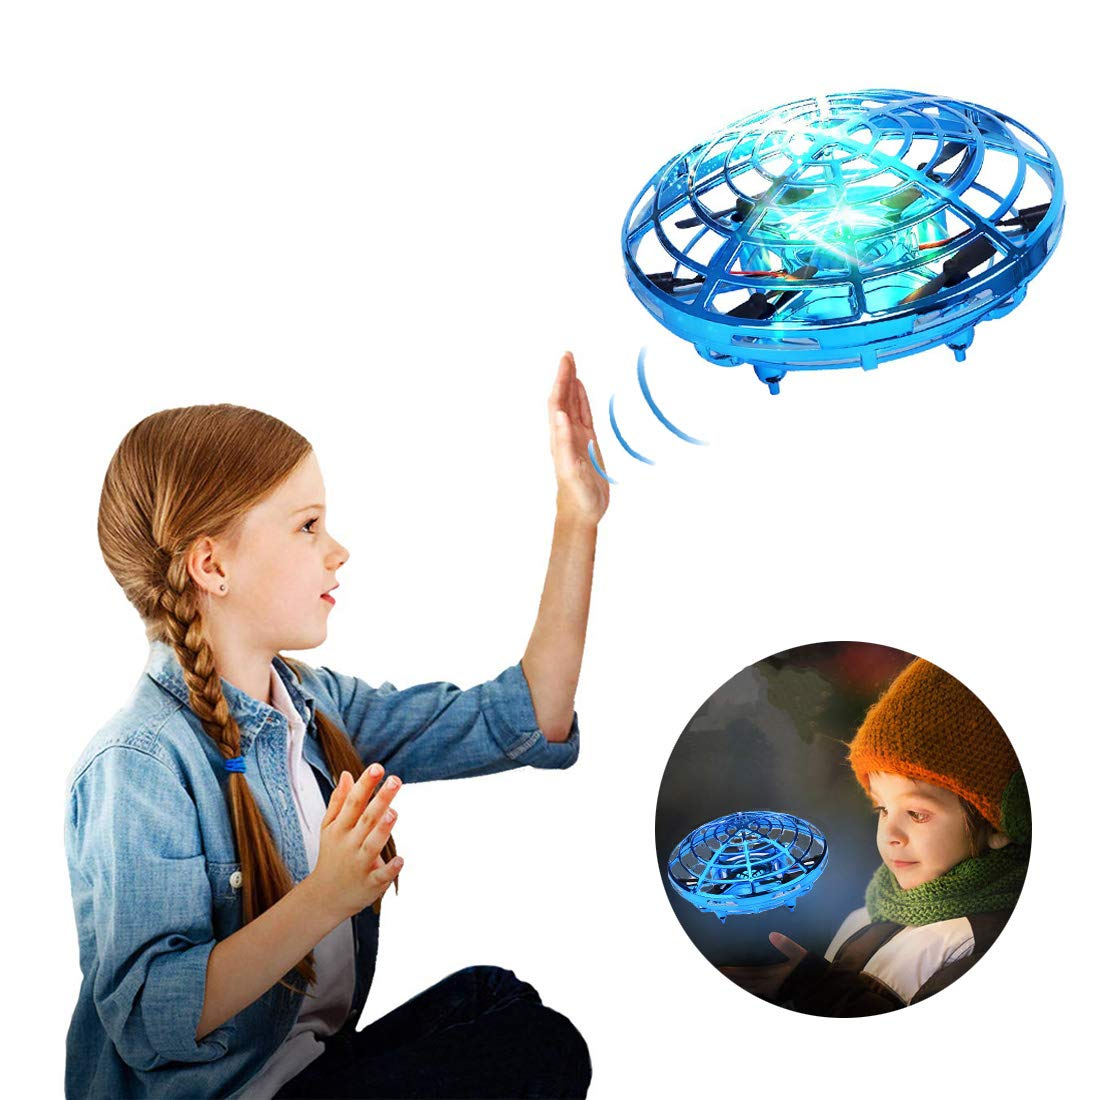 Hand Operated Drones for Kids or Adult, Mini Drone Flying Ball Toy, Scoot UFO Hand Free Infrared Sensing Drone Toys for Boys and Girls Holiday and Birthday Gifts by Nice Dream (Image #1)